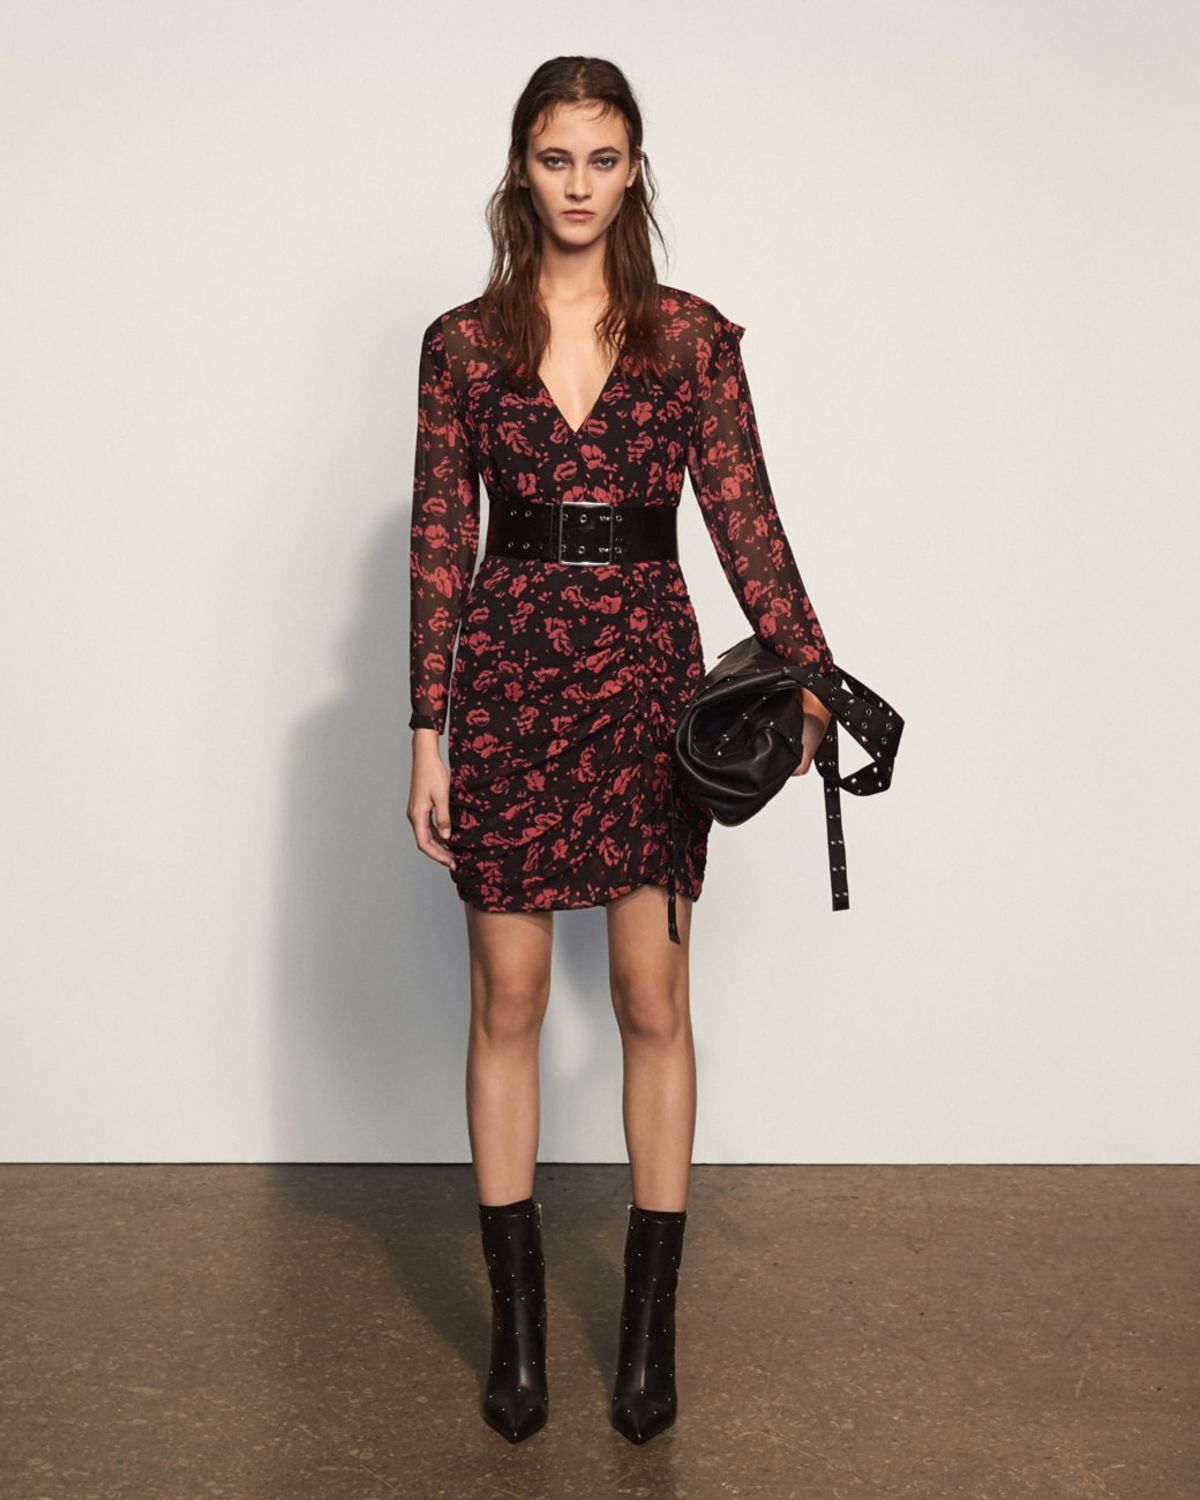 Image of a woman wearing a long sleeve floral printed dress styled with a black belt at the waist and black studded boots and bag.